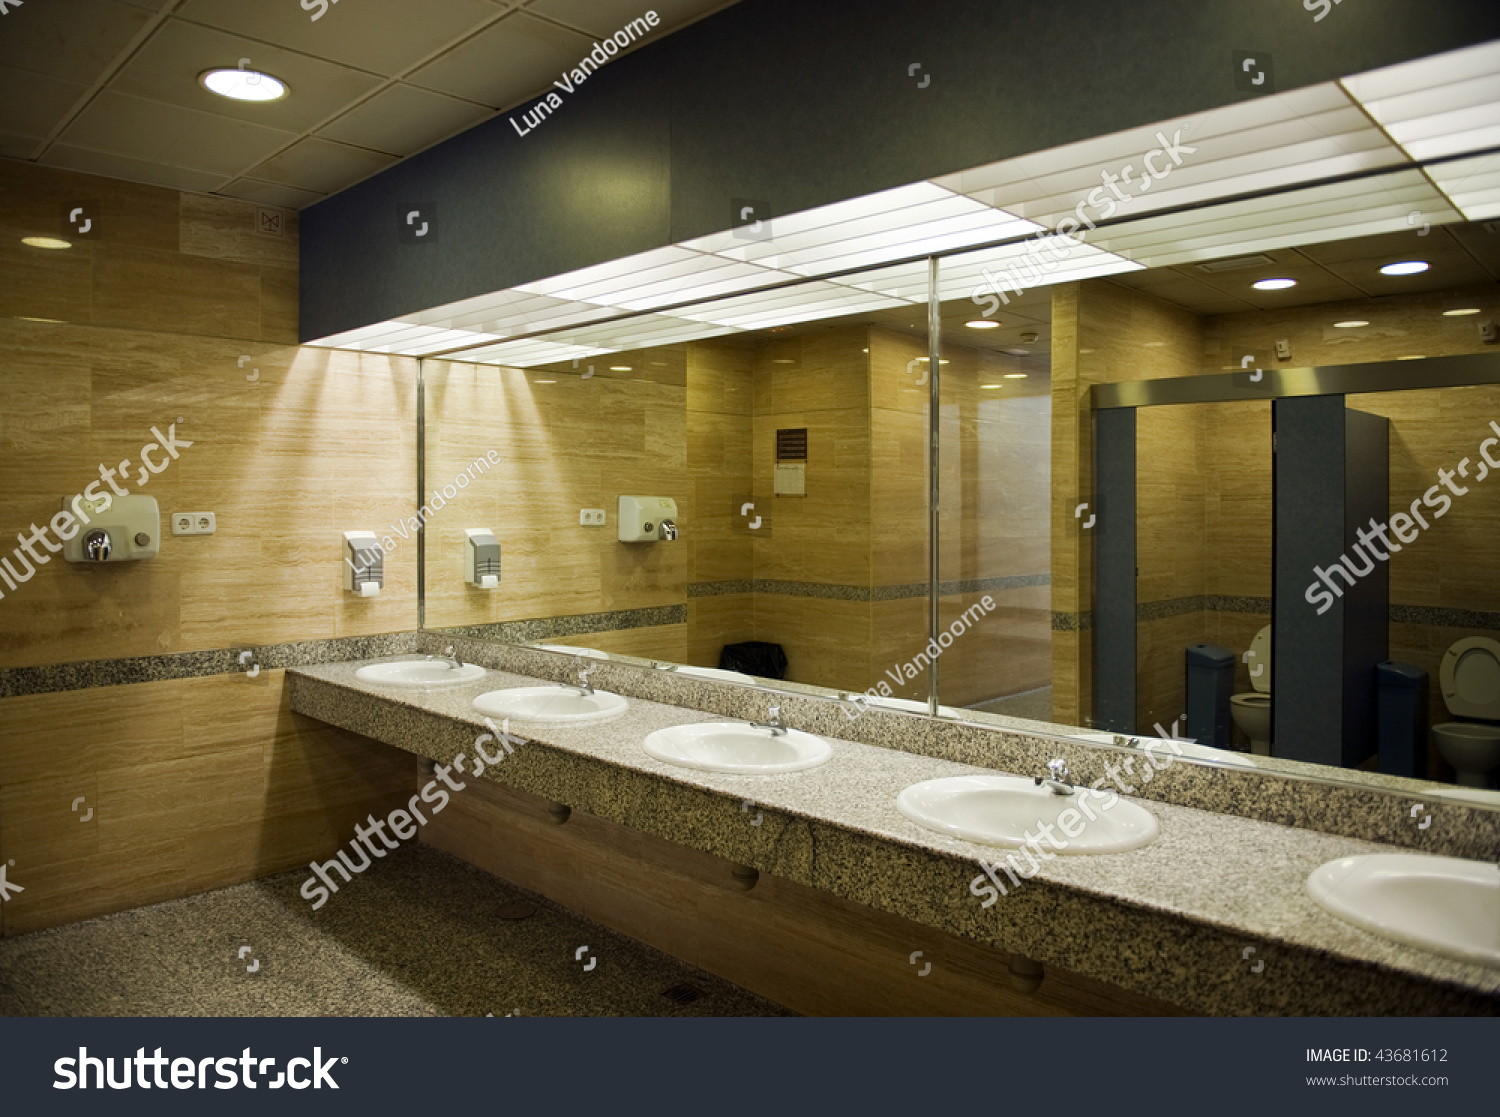 Public Empty Restroom With Washstands And Toilets In Mirror Stock